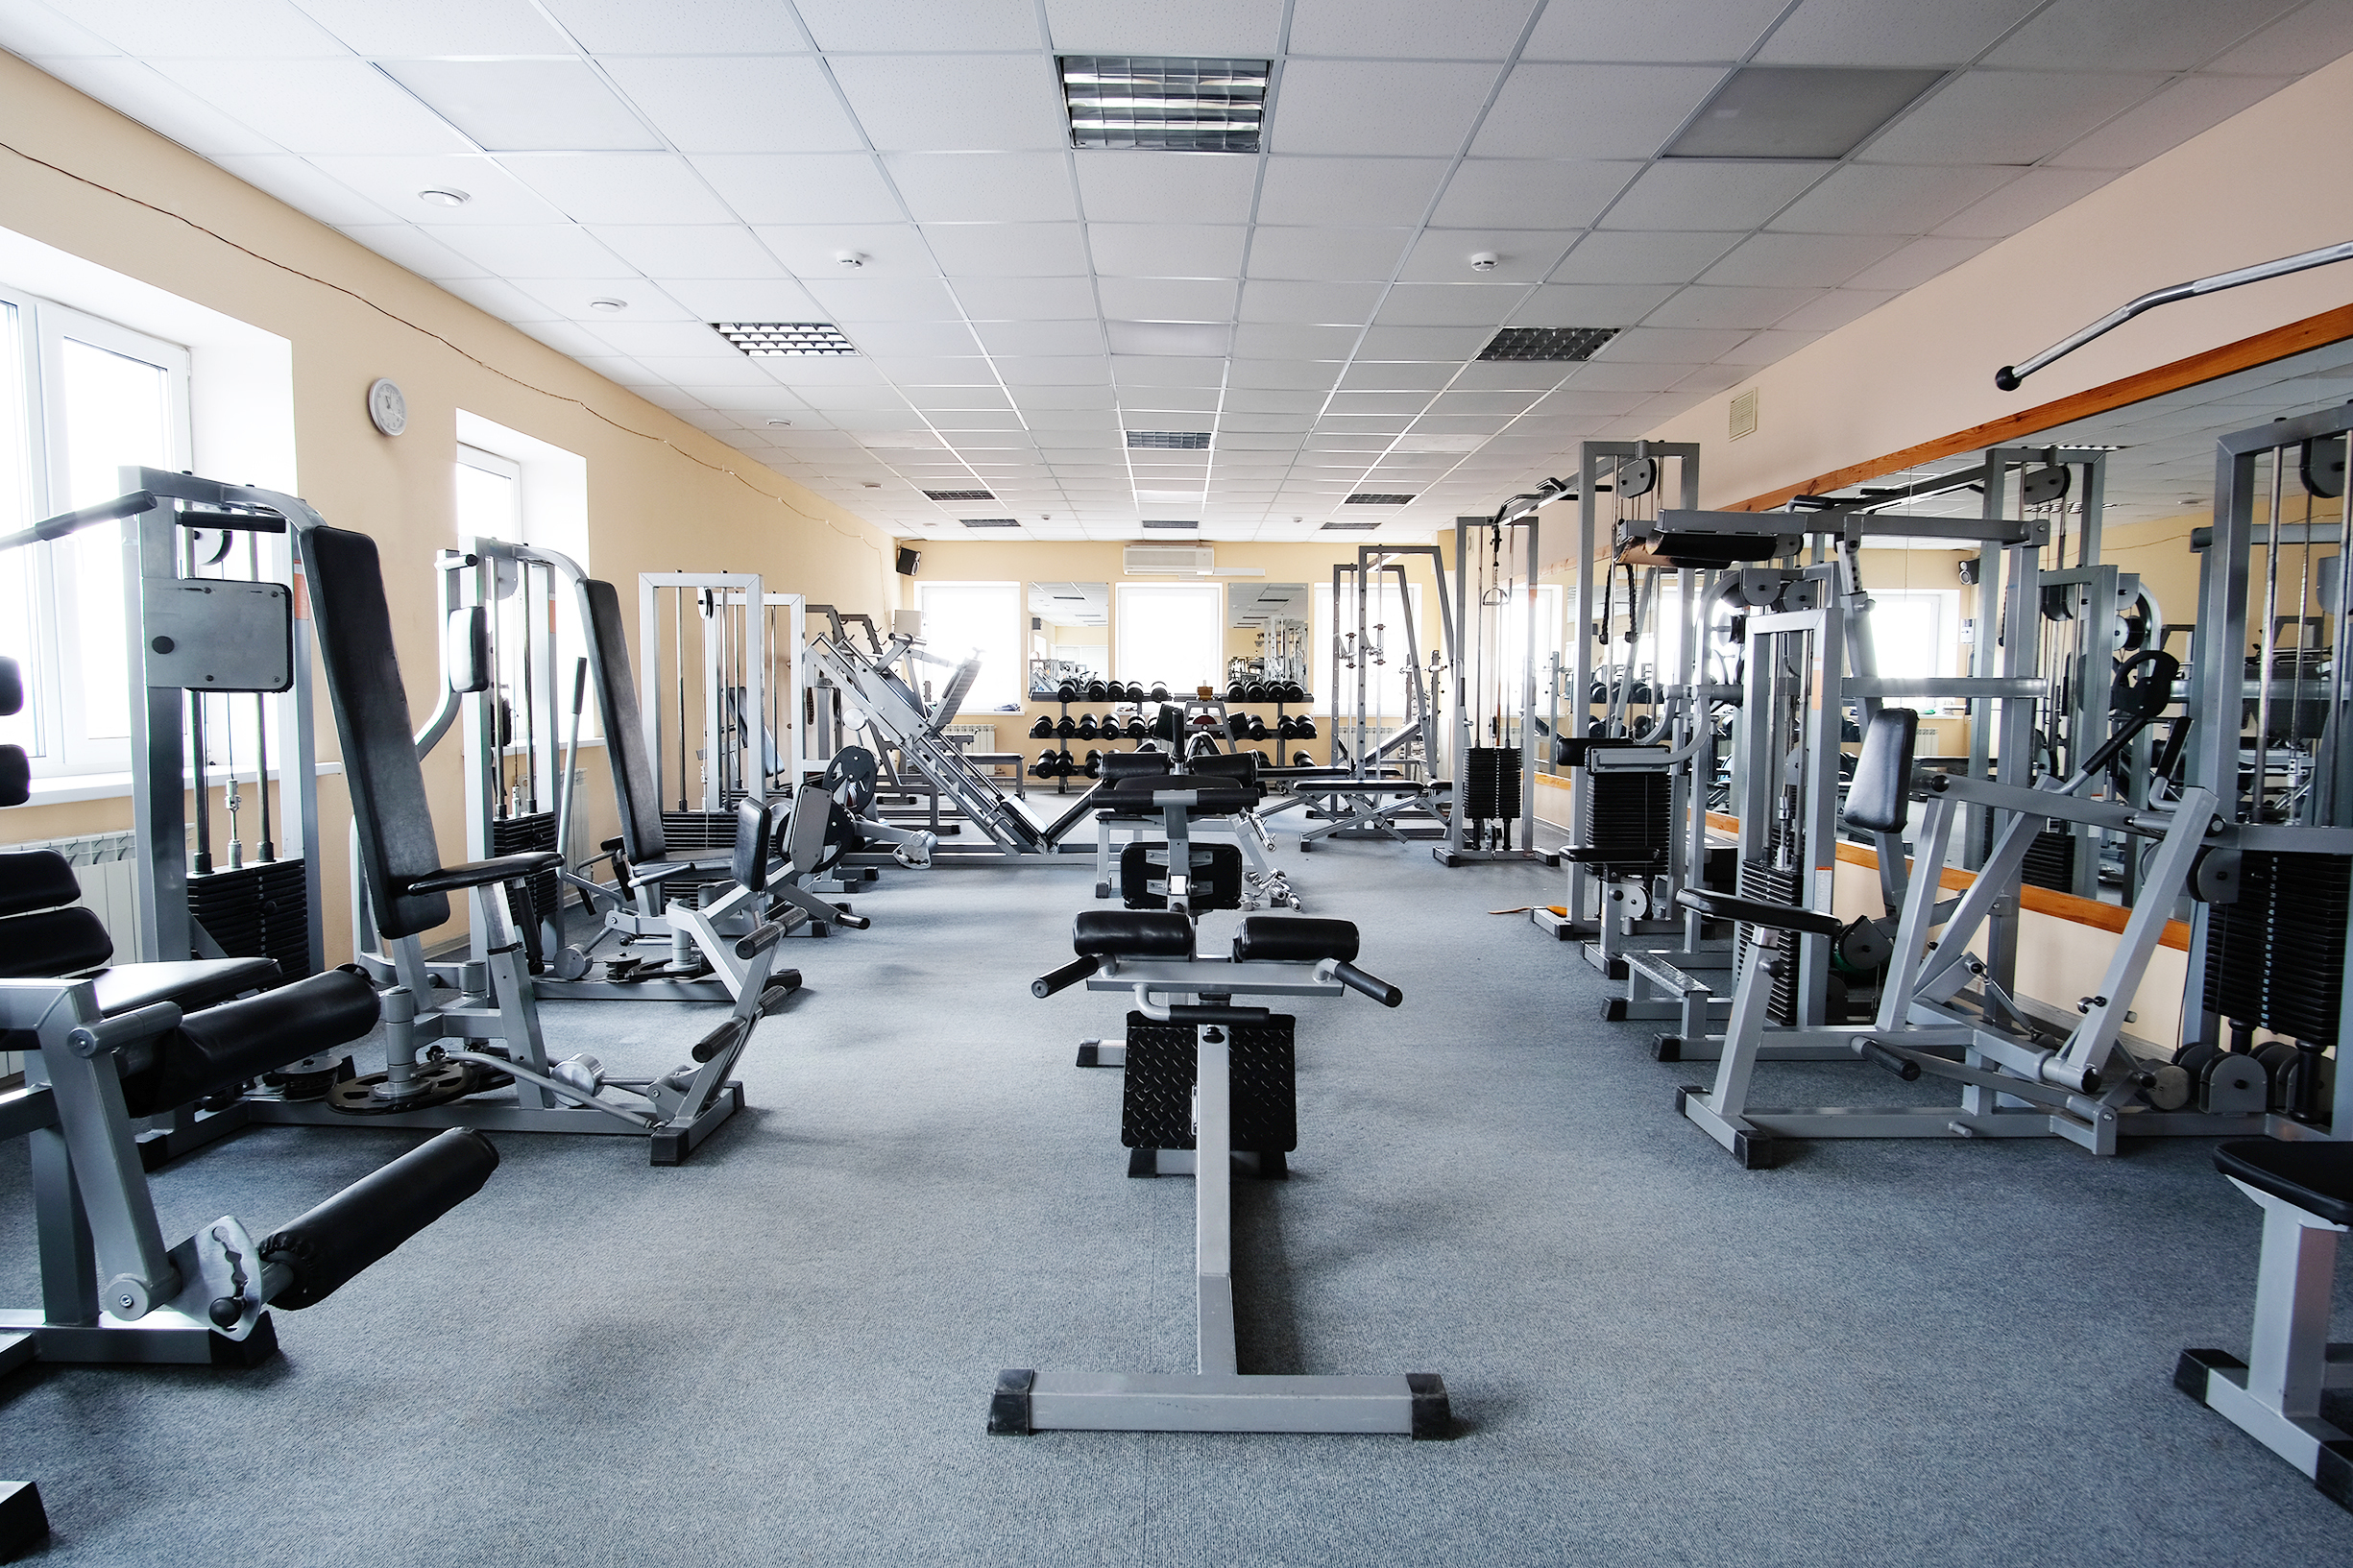 Leisure activities such as gyms can be noisy